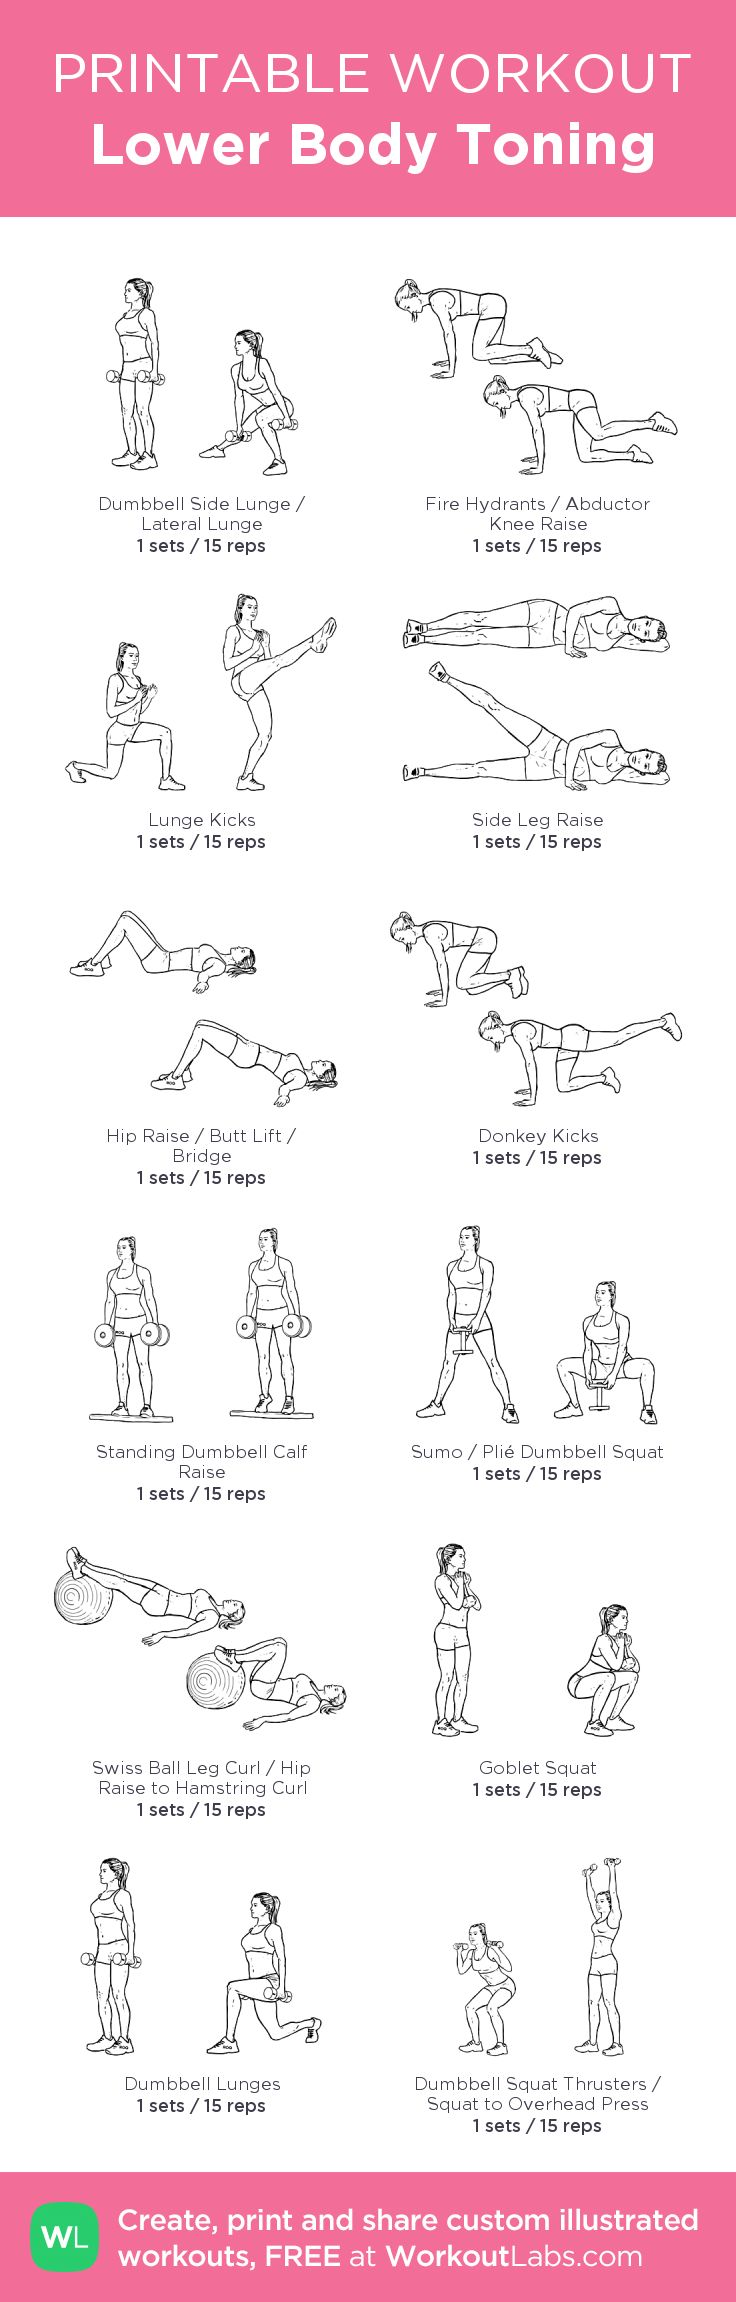 Lower Body Toning – my custom workout created at WorkoutLabs.com • Click through to download as printable PDF! #customworkout